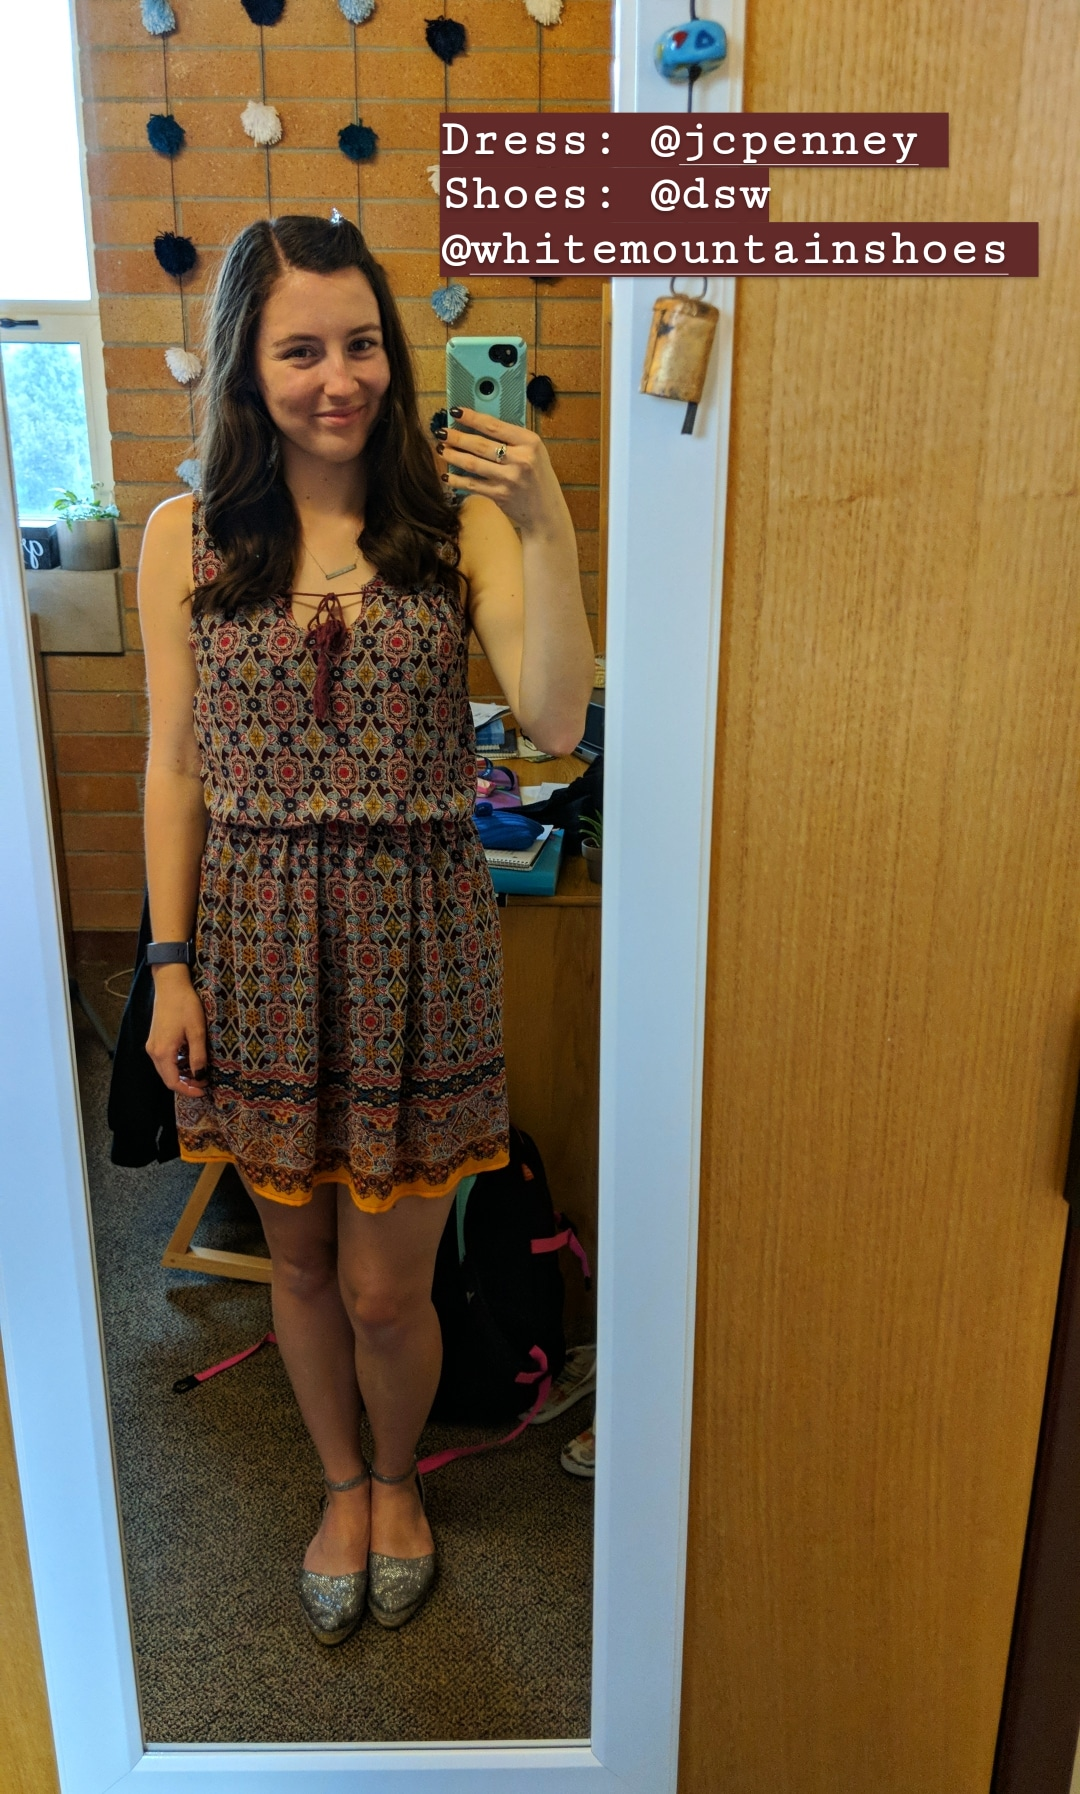 maroon patterned dress, sparkly espadrilles, fall outfit